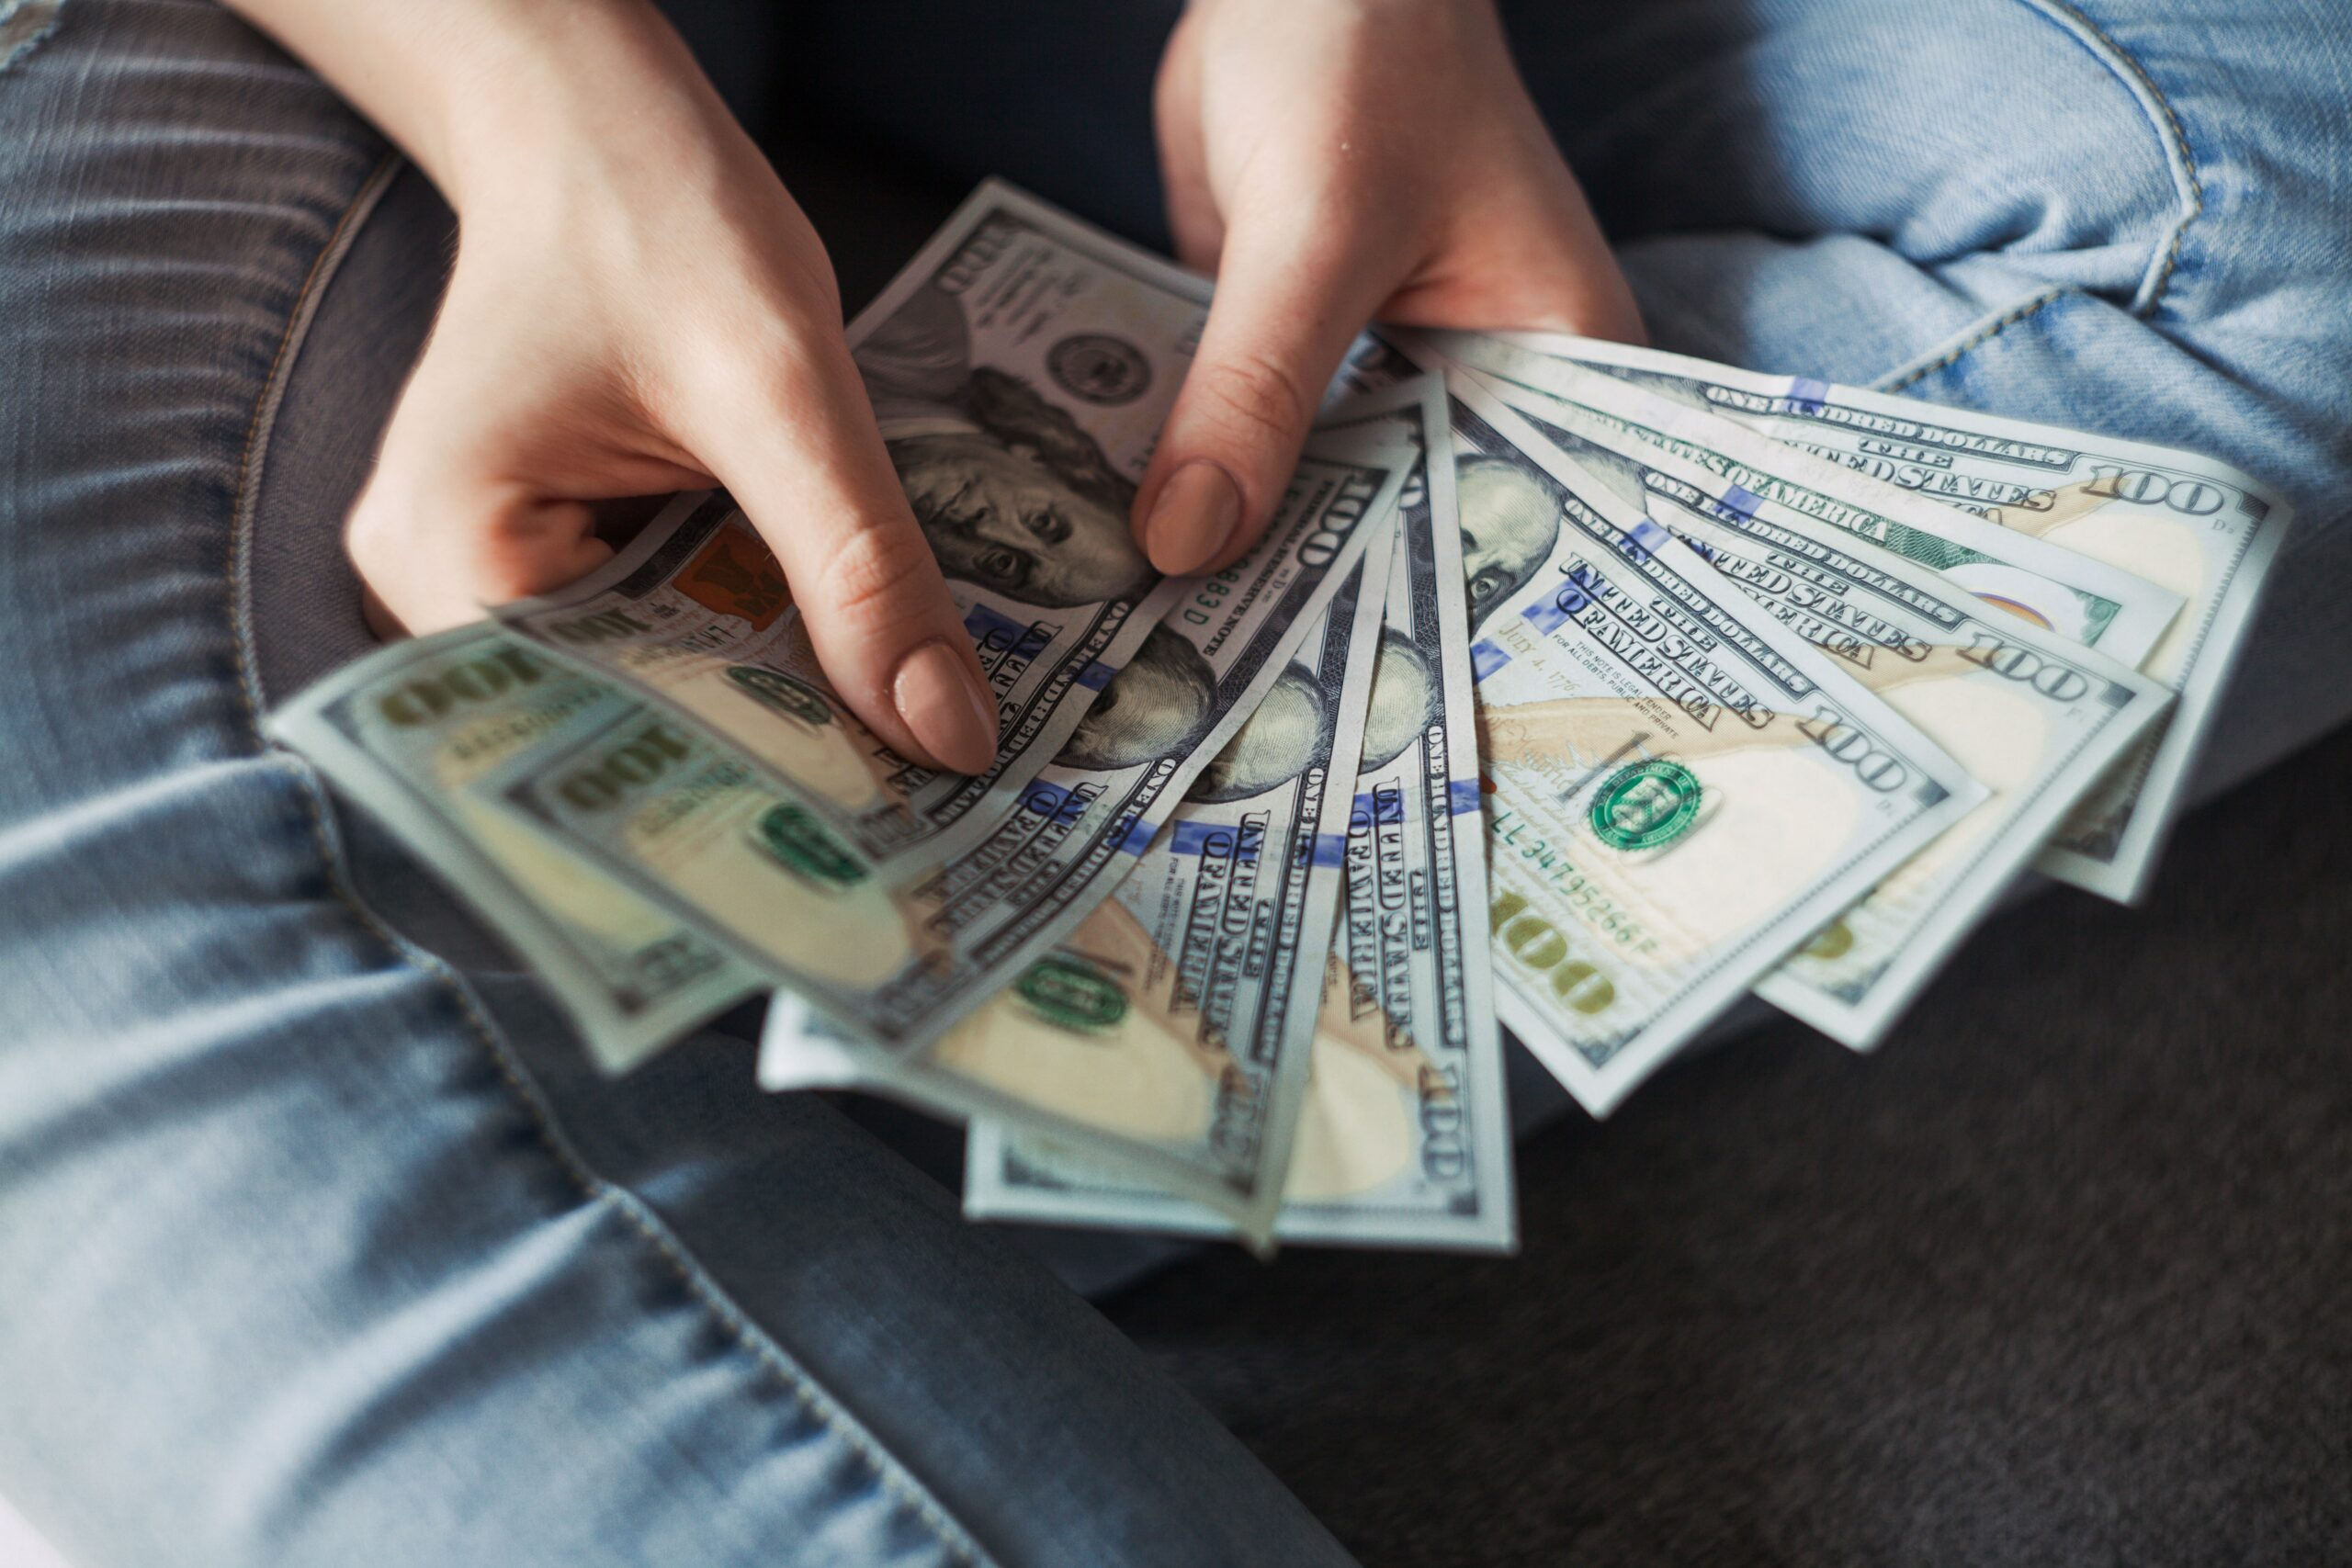 Safe cannabis banking act passes in House